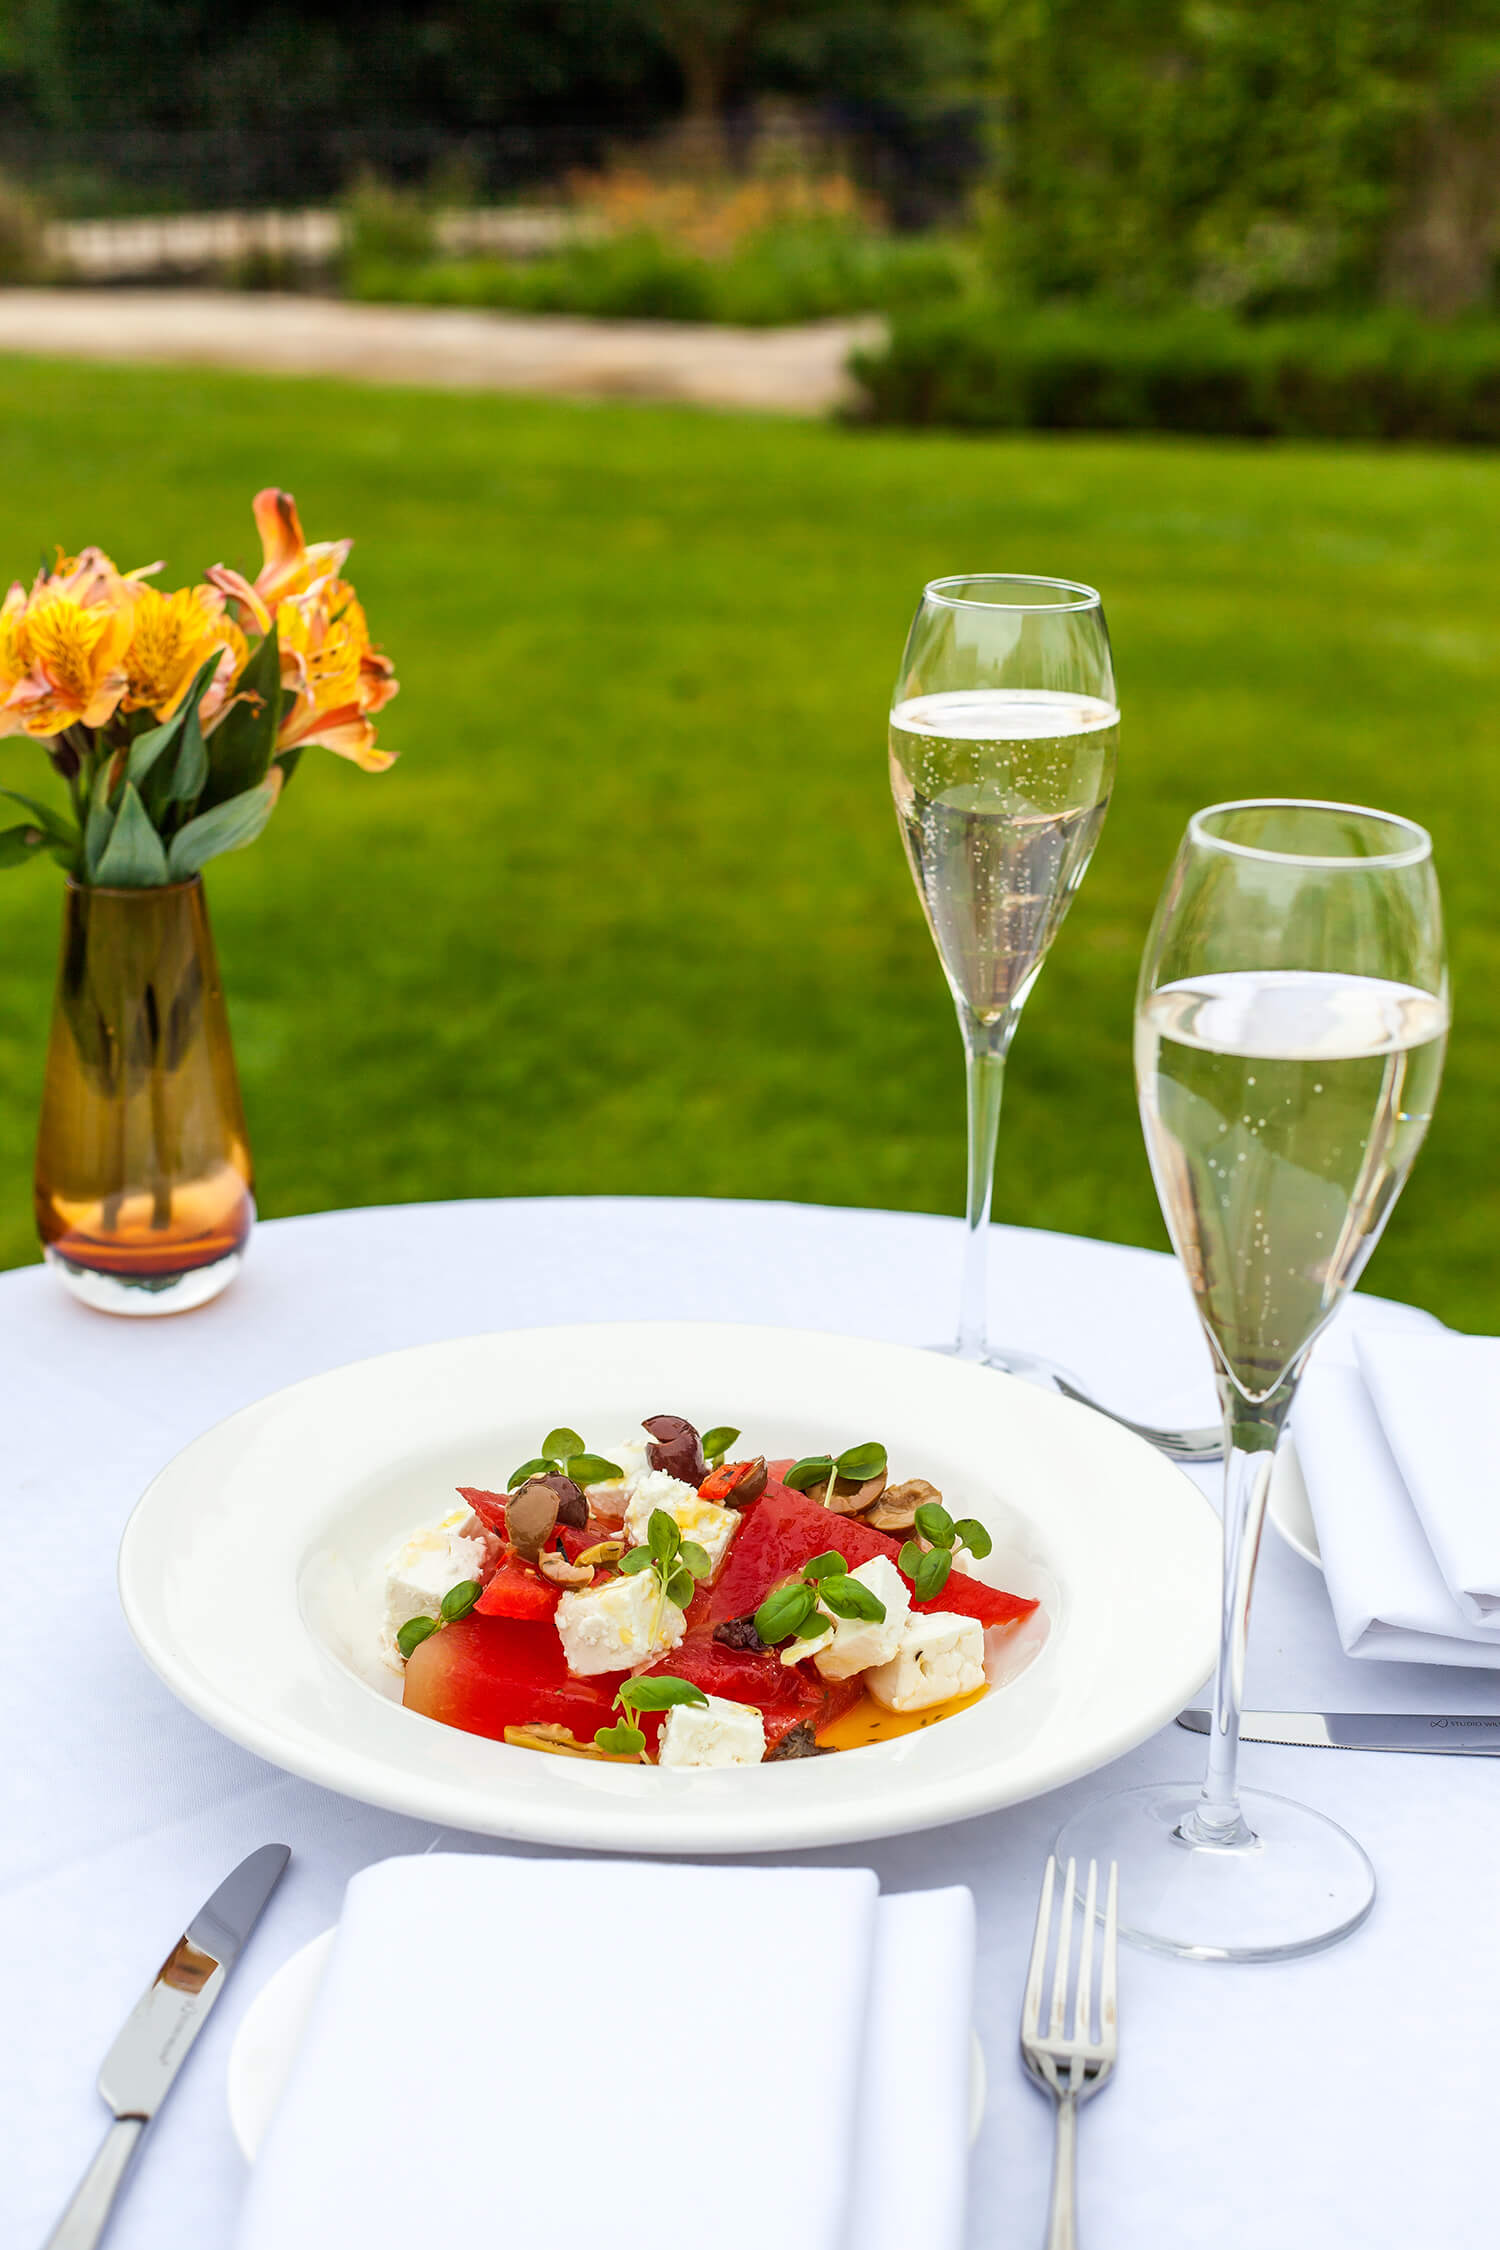 watermelon and feta salad - served in the gardens at Sopwell House